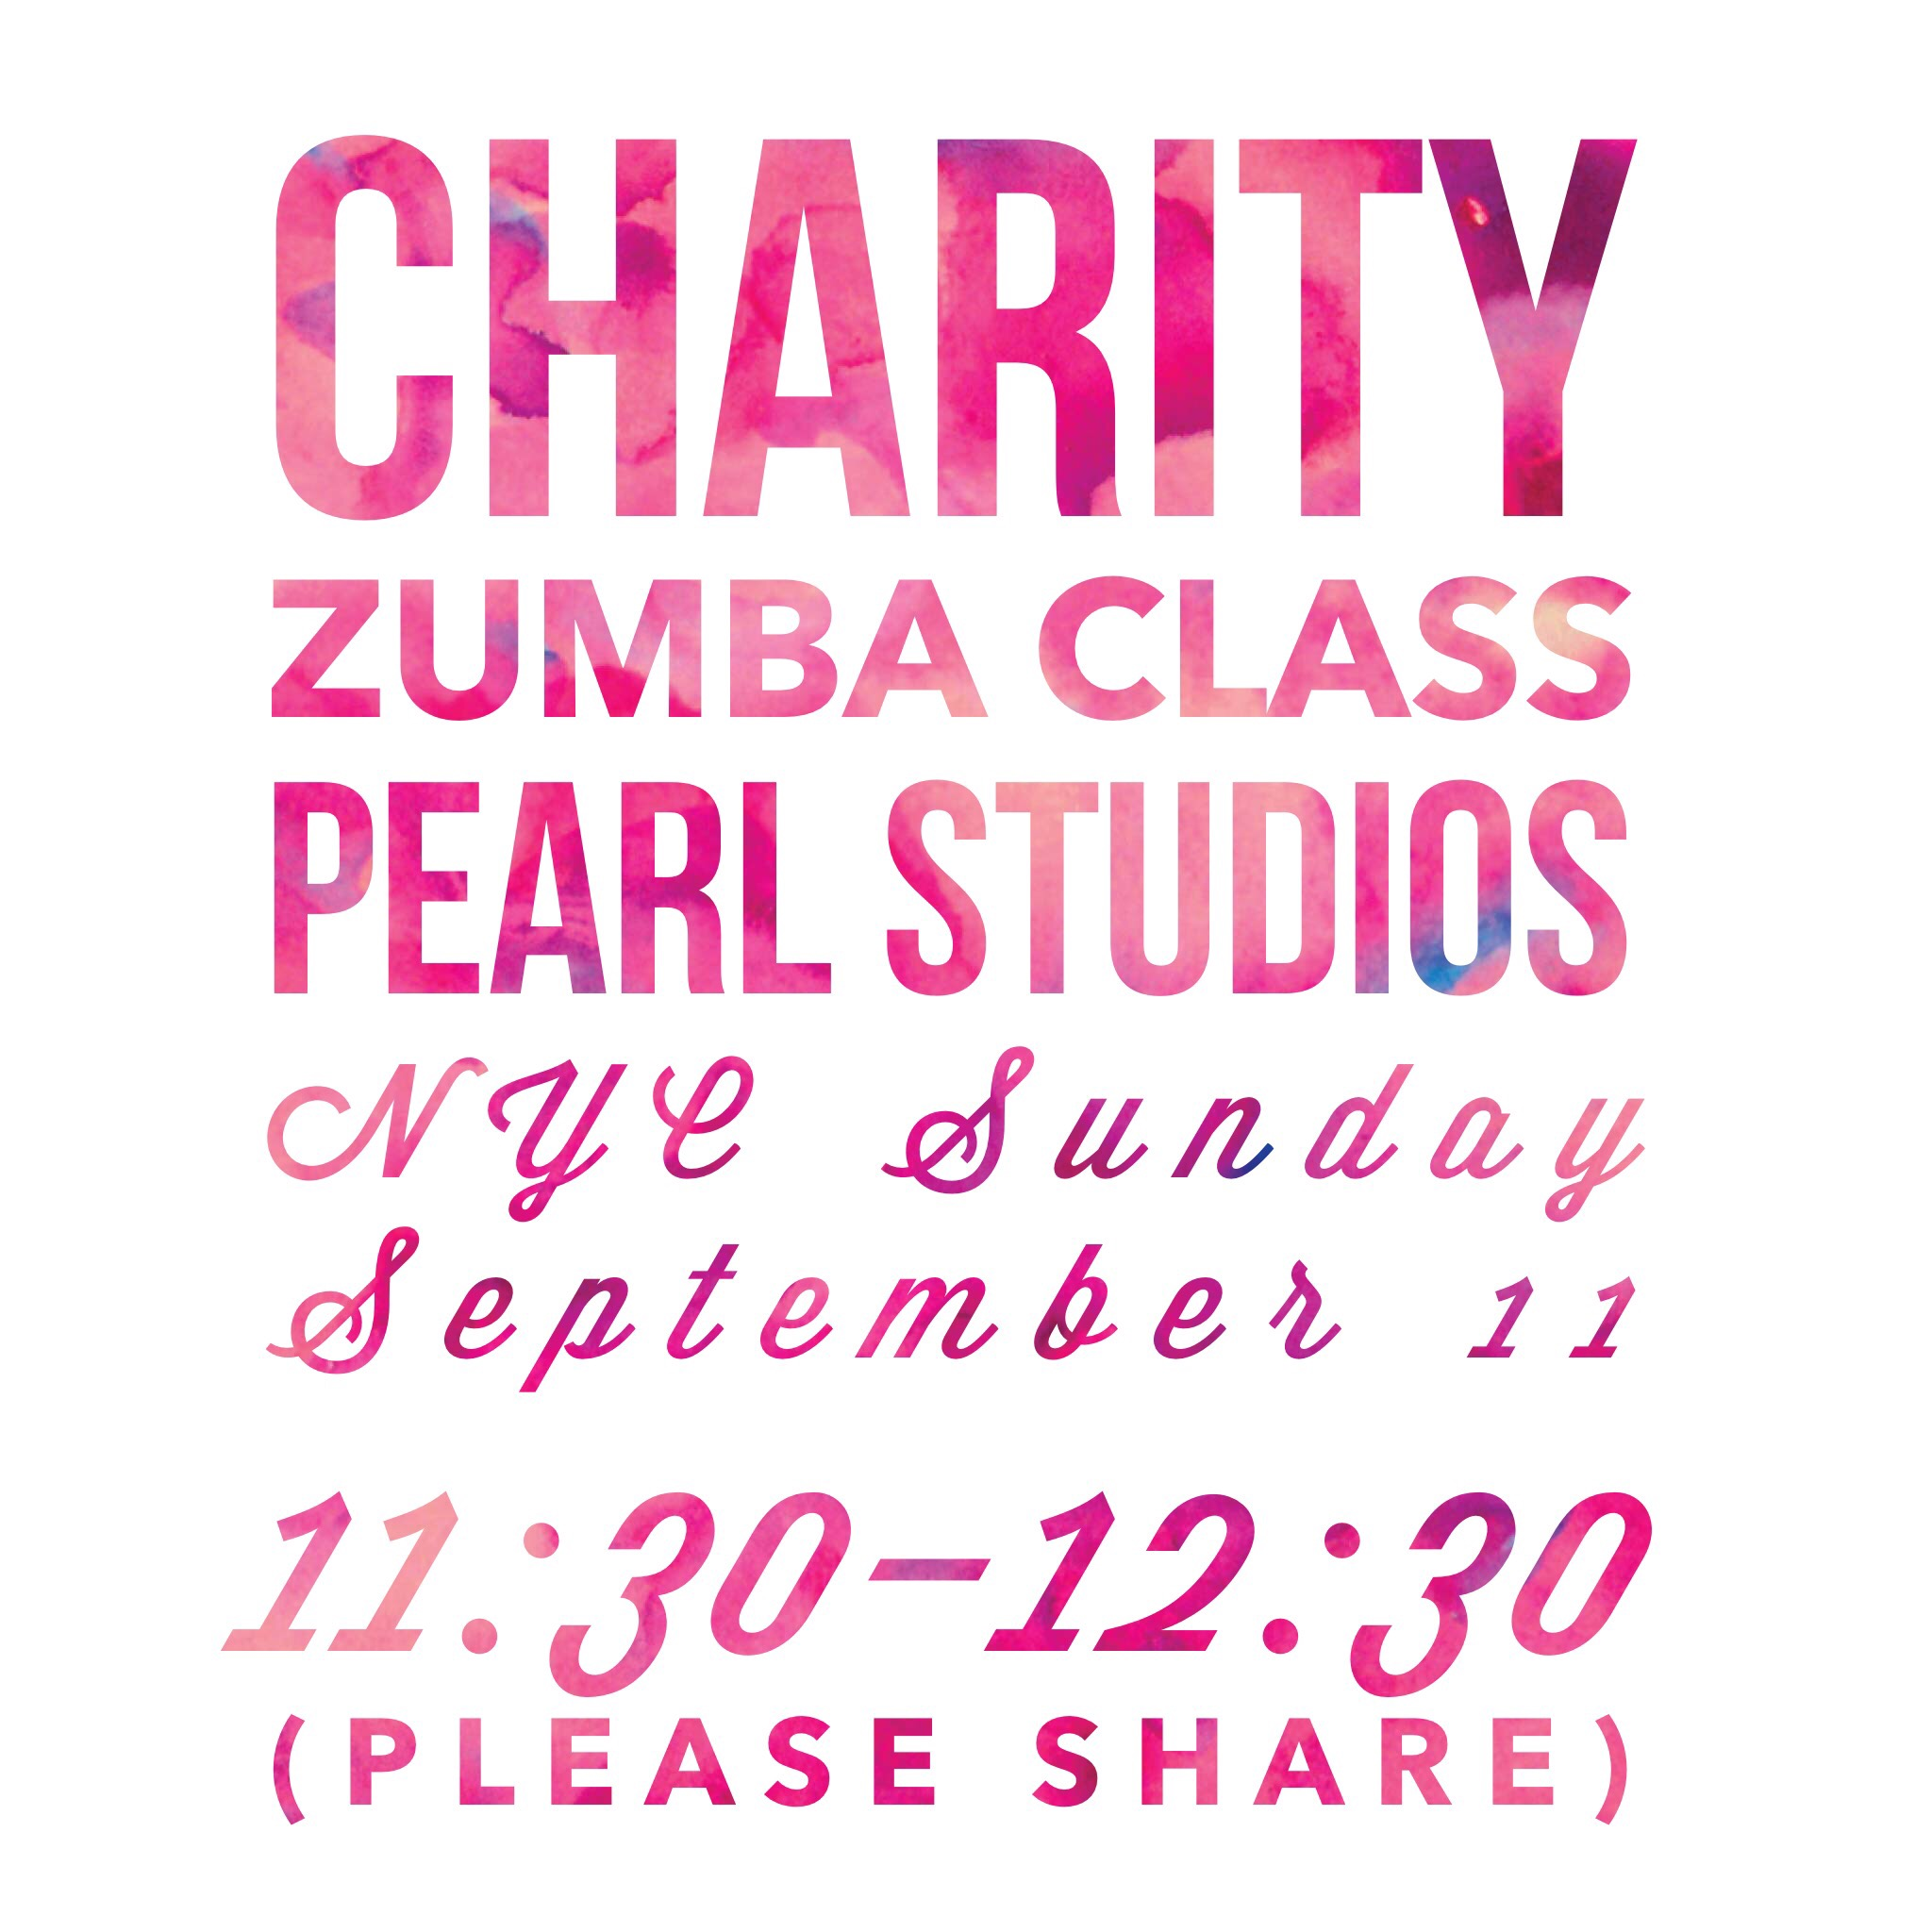 Zumba Charity Class NYC (Sunday, September 11, 2016)